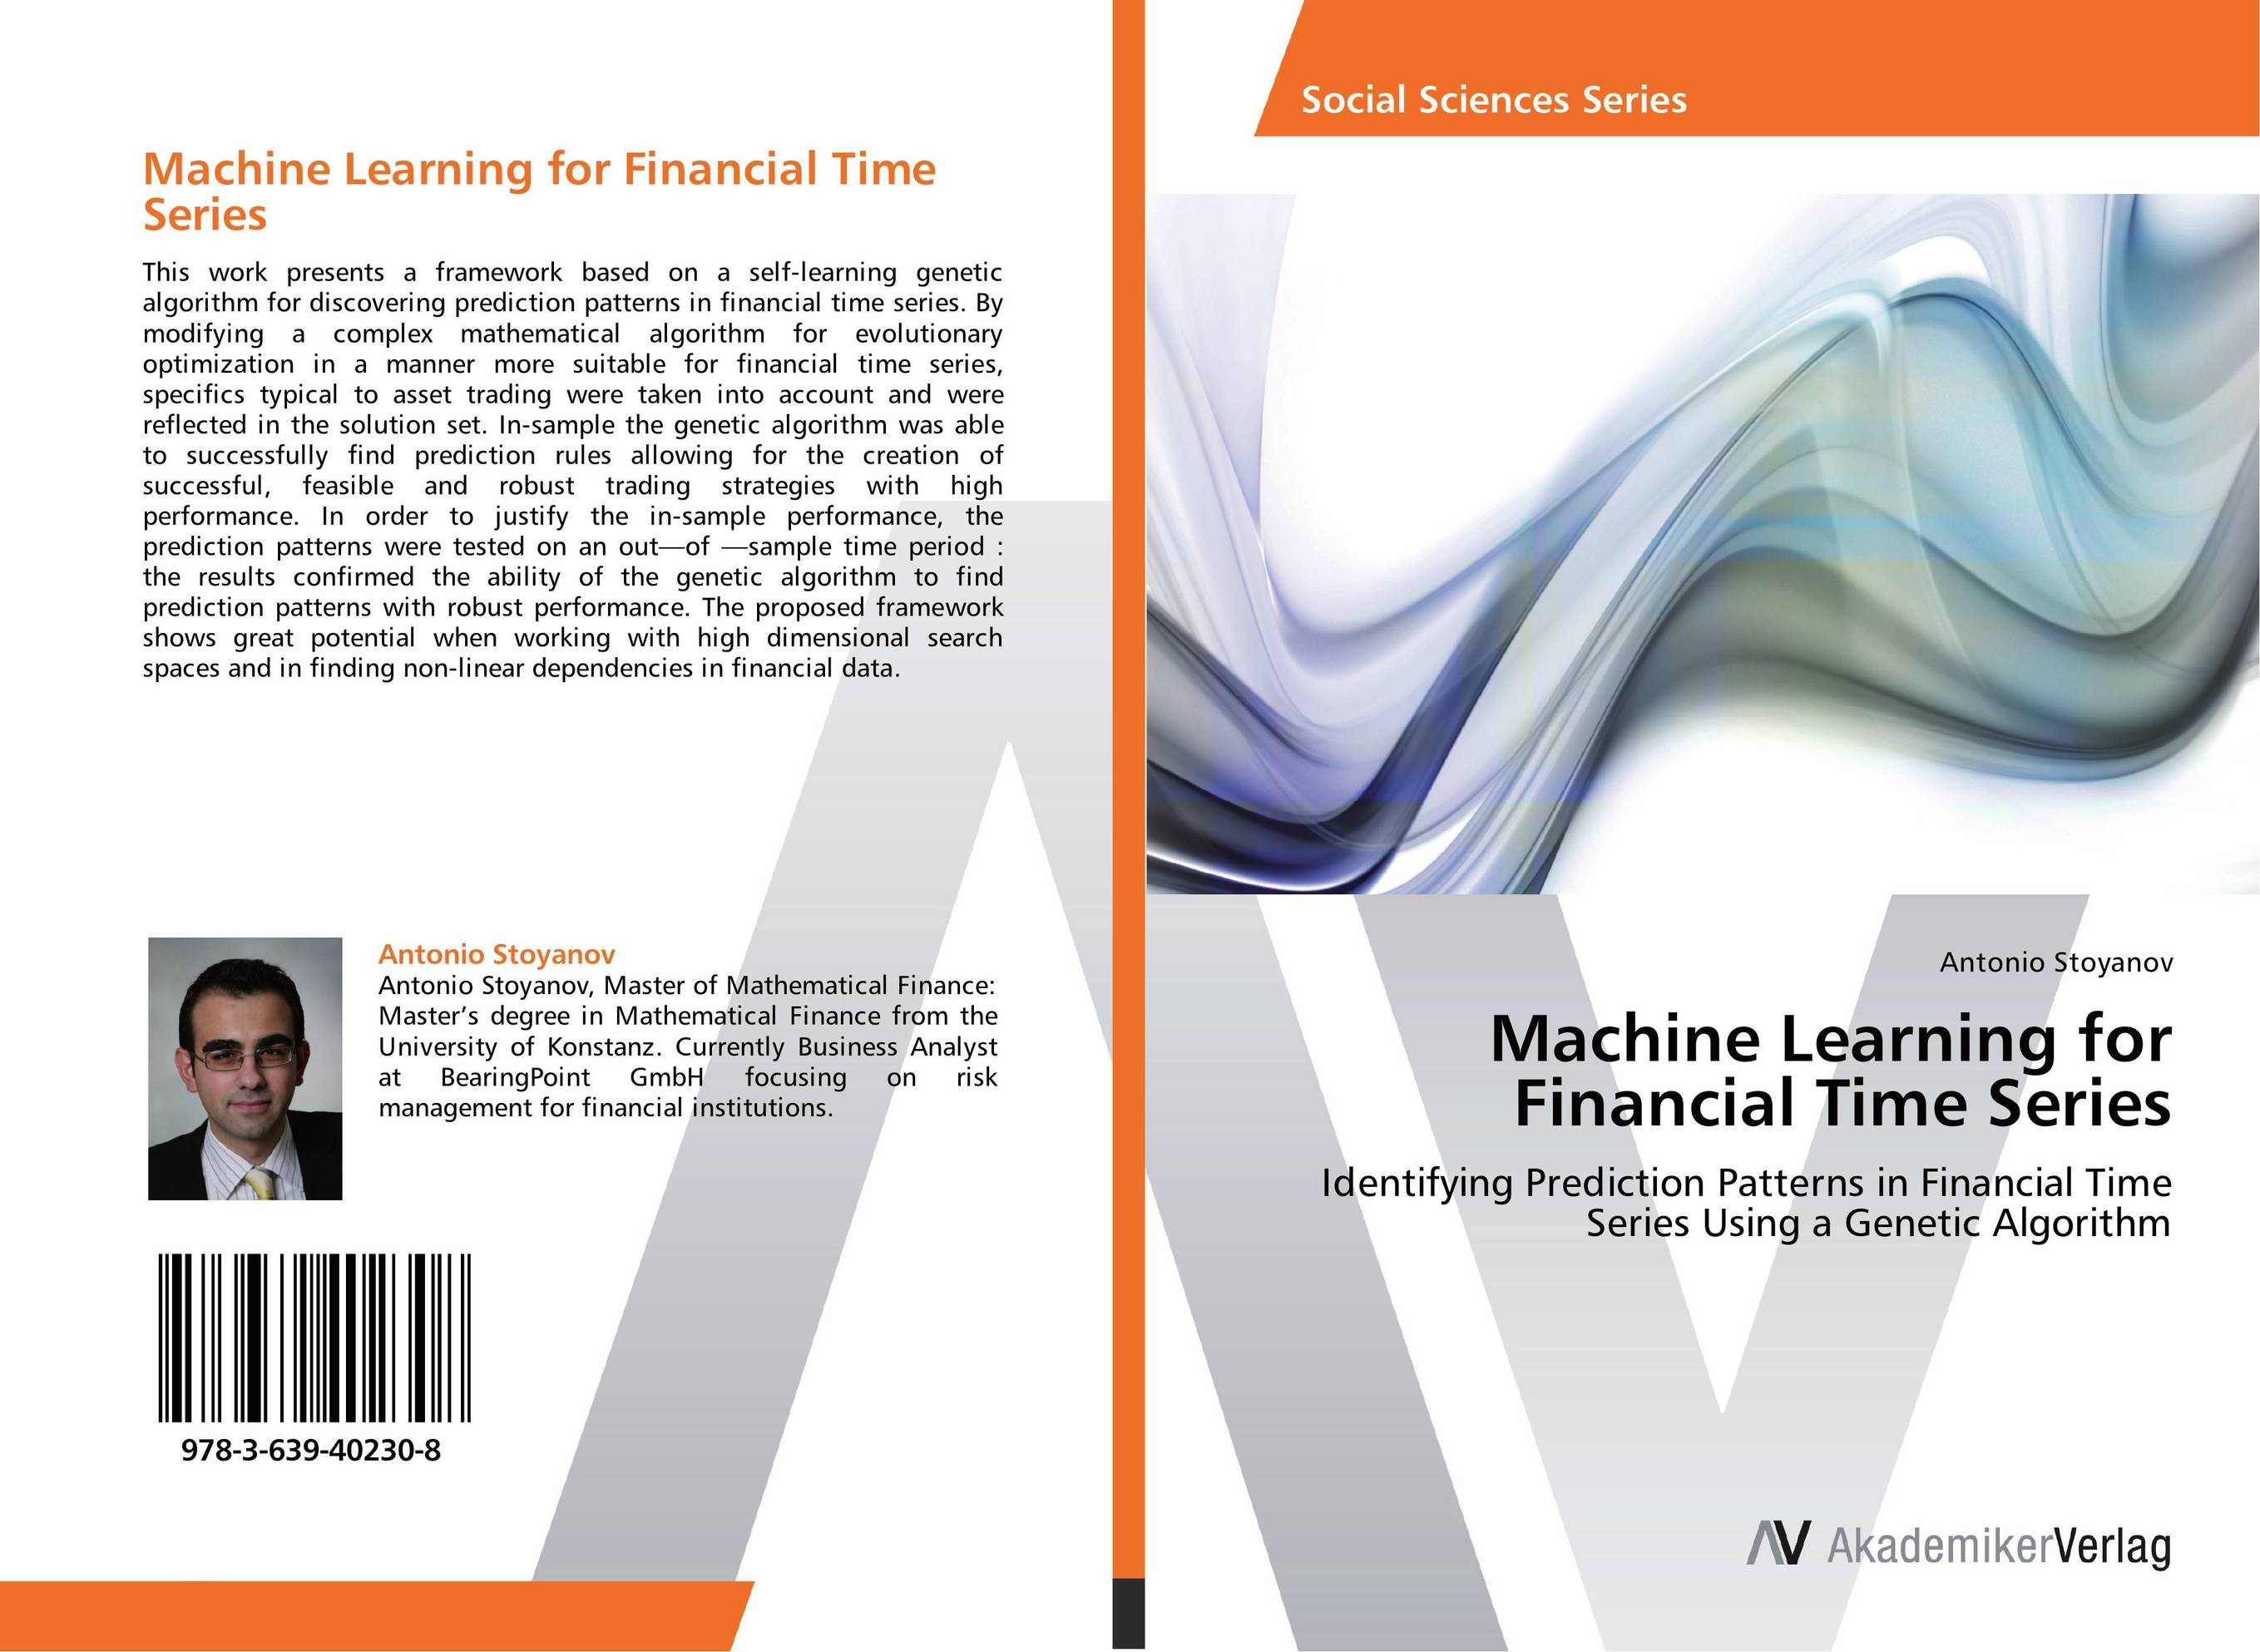 Machine Learning for Financial Time Series pso based evolutionary learning